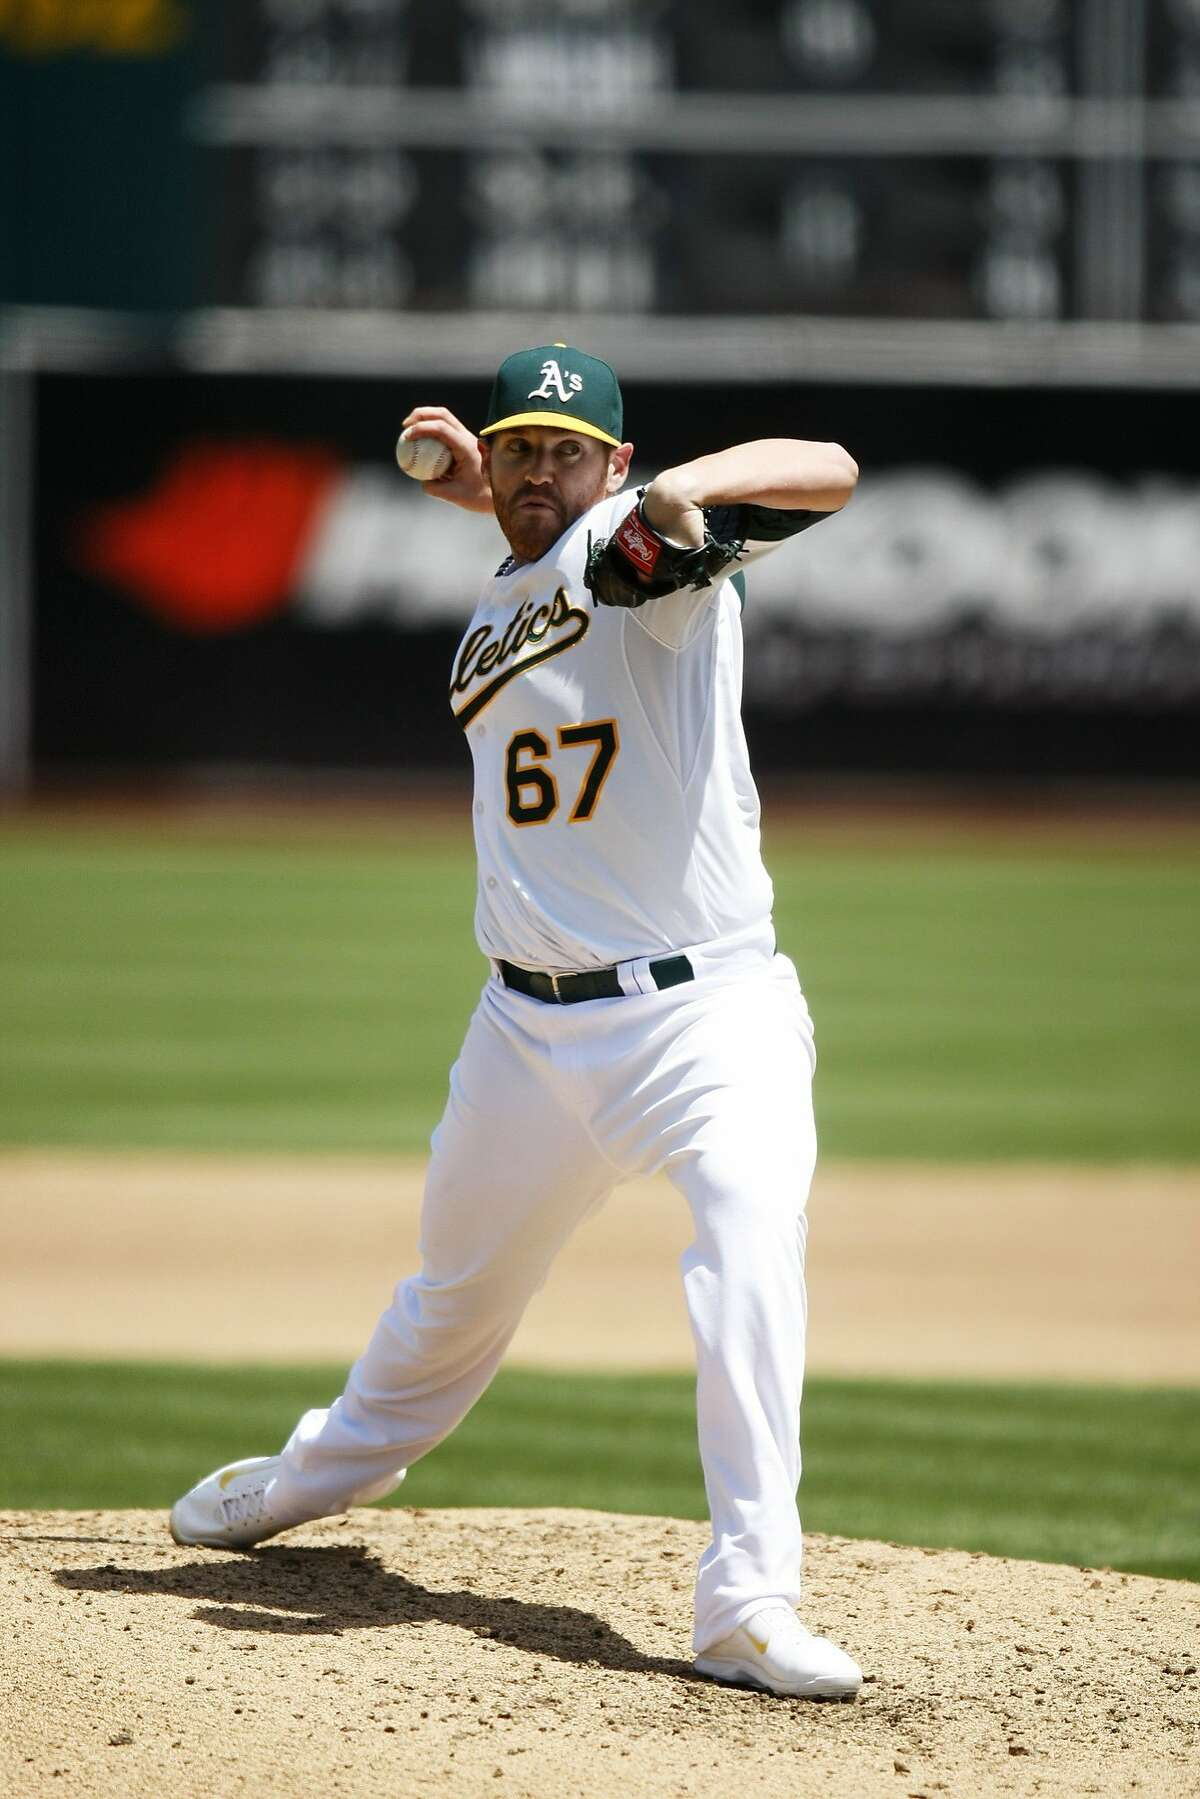 Athletics starting pitcher Dan Straily works pitches in the first inning of a game between the Oakland A's and the Seattle Mariners at O.co Coliseum on May 7, 2014 in Oakland, Calif.